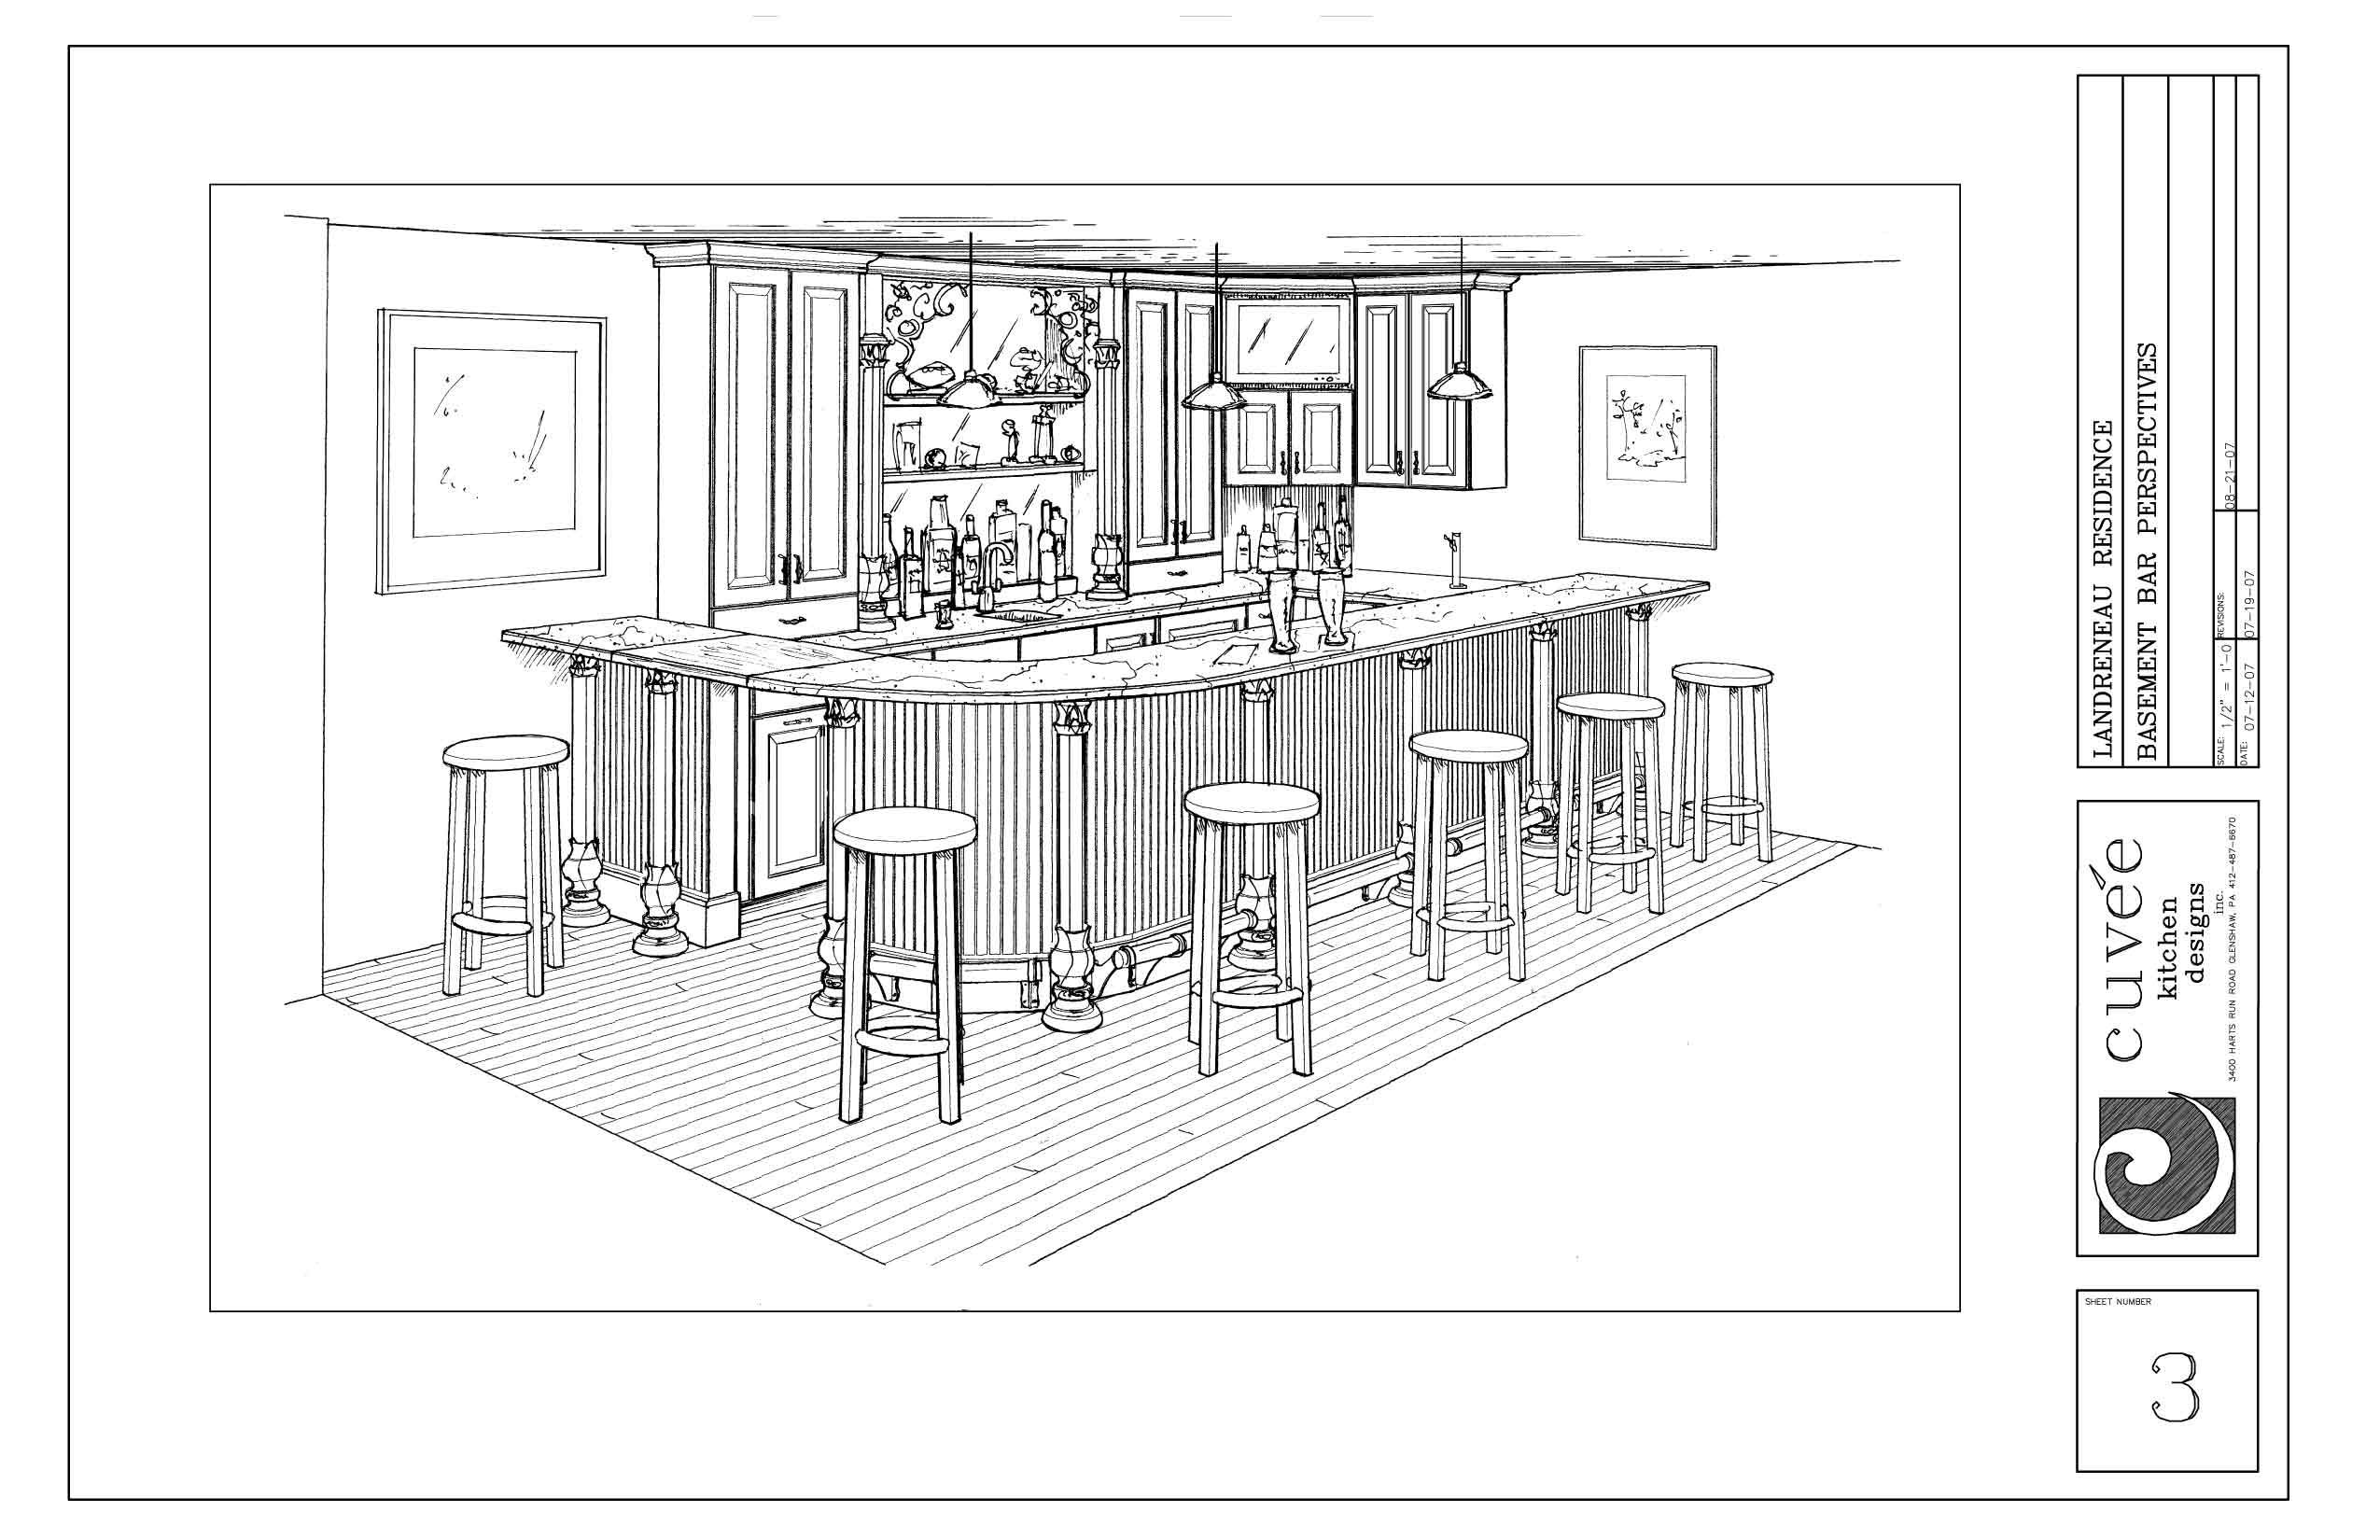 dimensions of basement bar | Architectural and Interior Design